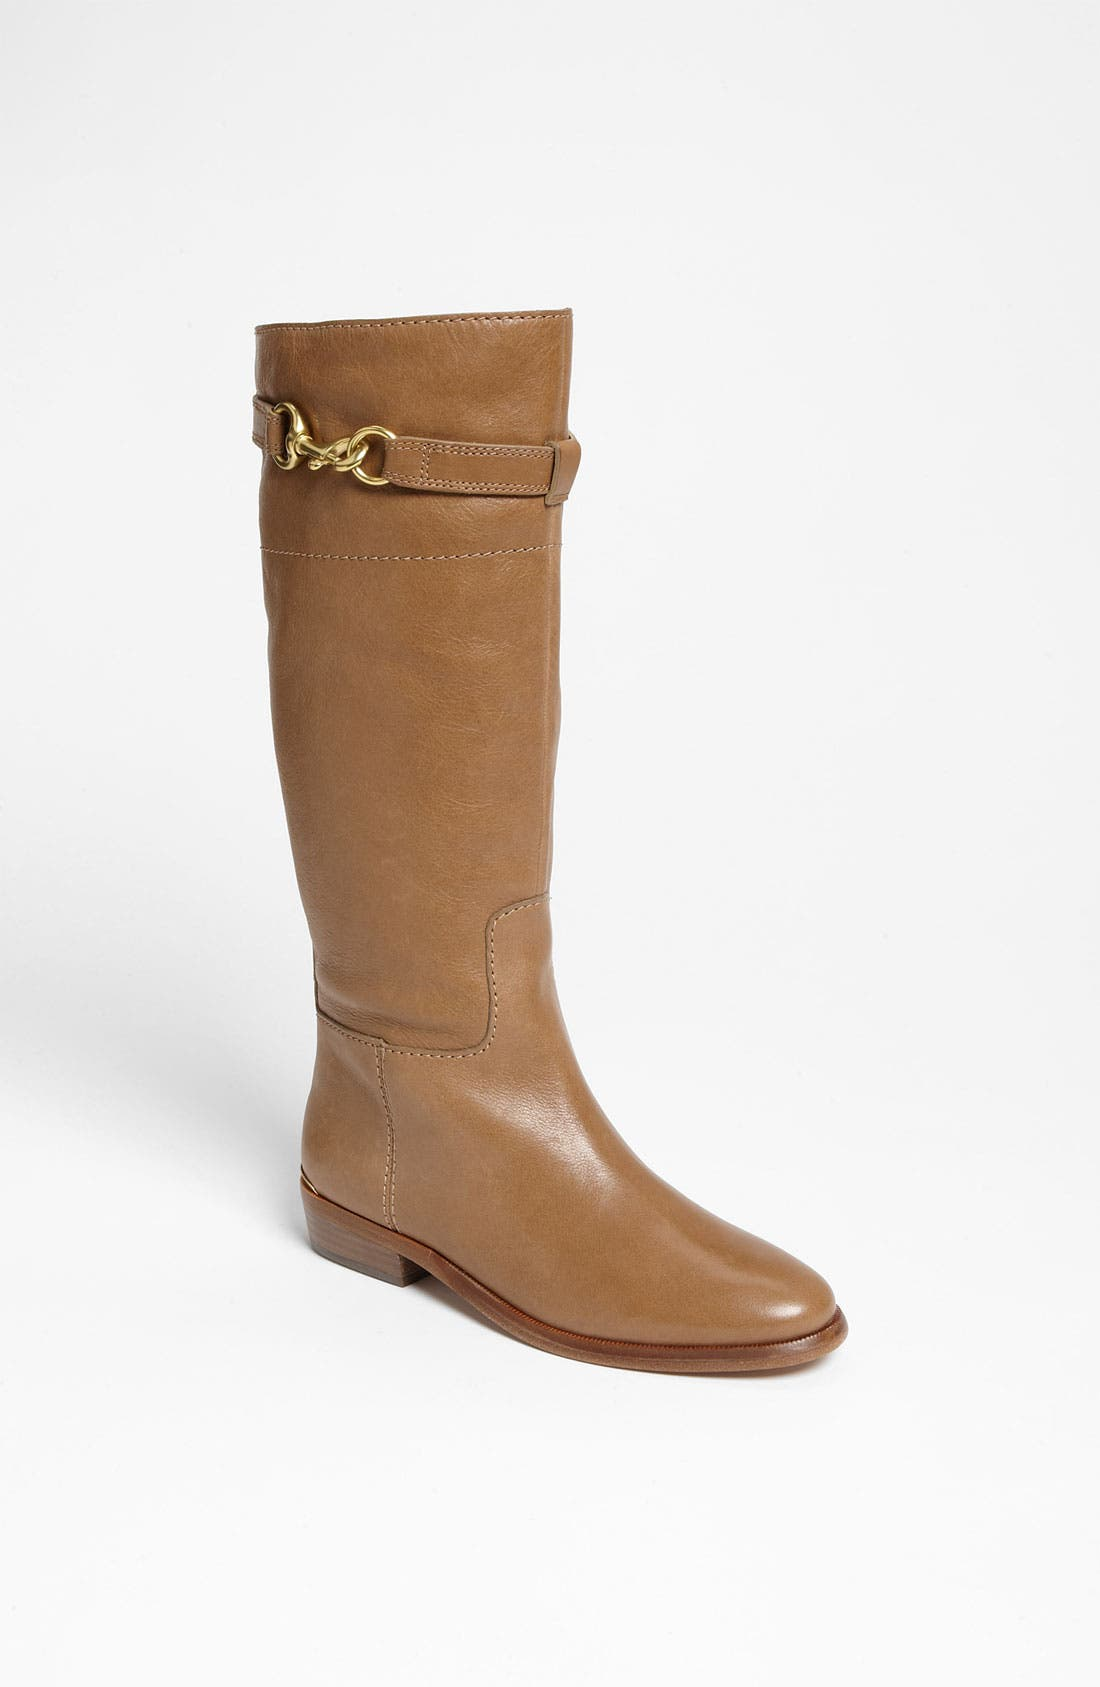 Alternate Image 1 Selected - COACH 'Laguna' Boot (Nordstrom Exclusive)